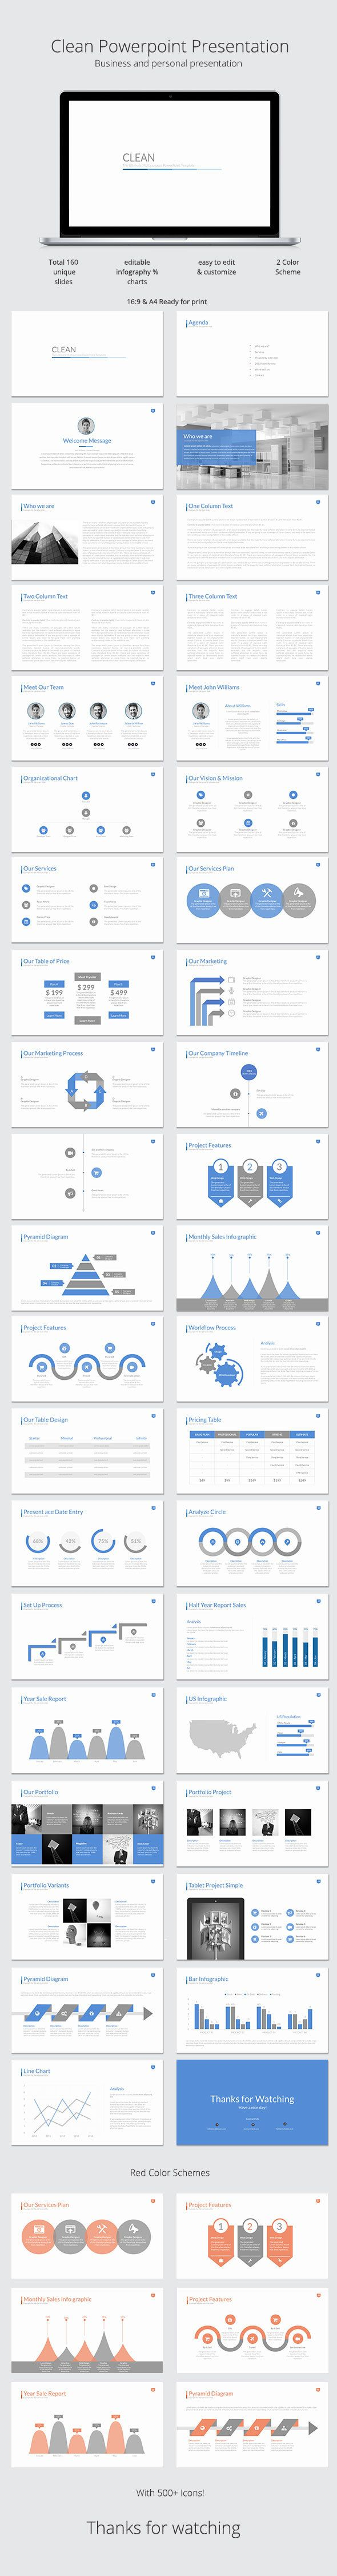 Coolmathgamesus  Scenic  Ideas About Powerpoint Presentations On Pinterest With Entrancing Clean Powerpoint Template With Agreeable Powerpoint Backgrounds School Also Microsoft Office Powerpoint Templates Free Download In Addition Putting A Youtube Video In A Powerpoint And Designing Powerpoint Slides As Well As Loop Animation Powerpoint Additionally Powerpoint Heaven From Pinterestcom With Coolmathgamesus  Entrancing  Ideas About Powerpoint Presentations On Pinterest With Agreeable Clean Powerpoint Template And Scenic Powerpoint Backgrounds School Also Microsoft Office Powerpoint Templates Free Download In Addition Putting A Youtube Video In A Powerpoint From Pinterestcom